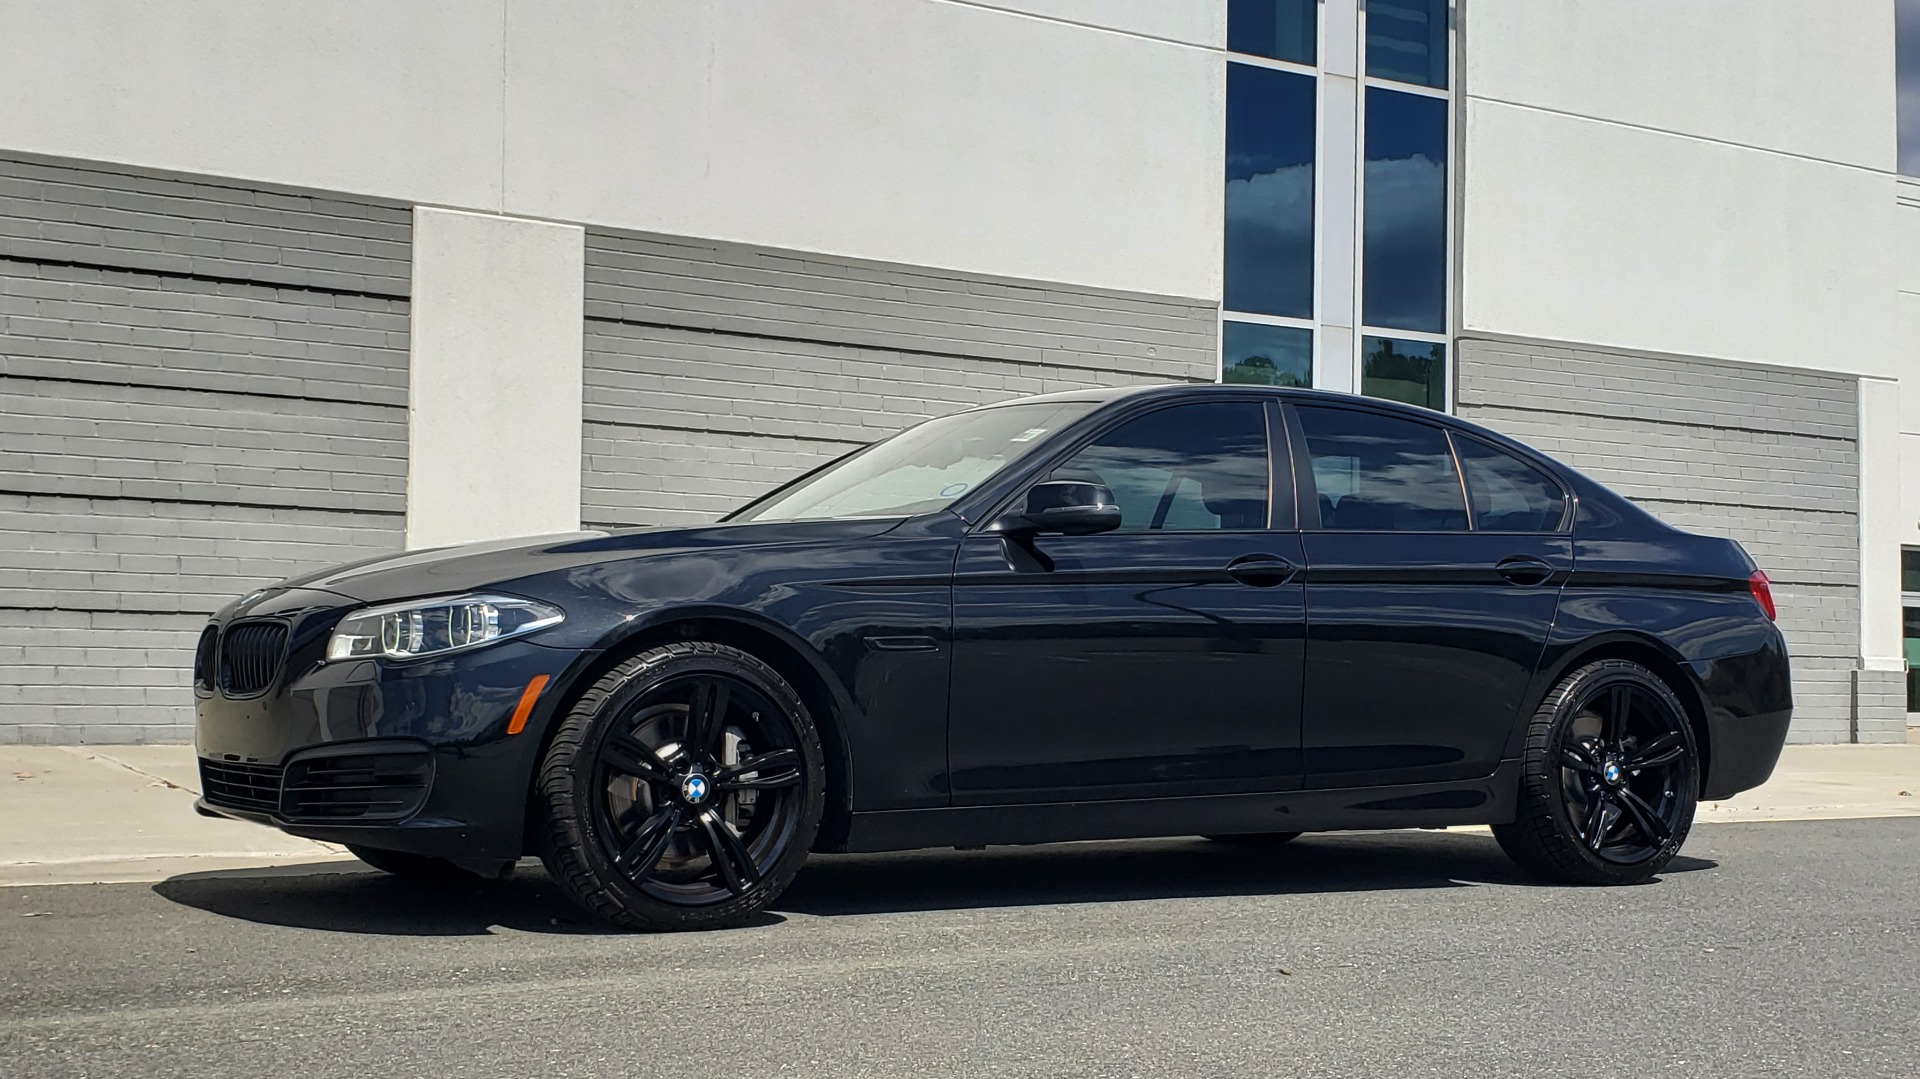 Used 2014 BMW 5 SERIES 535I PREMIUM / HUD / NAV / HTD STS / SUNROOF / REARVIEW for sale $18,995 at Formula Imports in Charlotte NC 28227 3